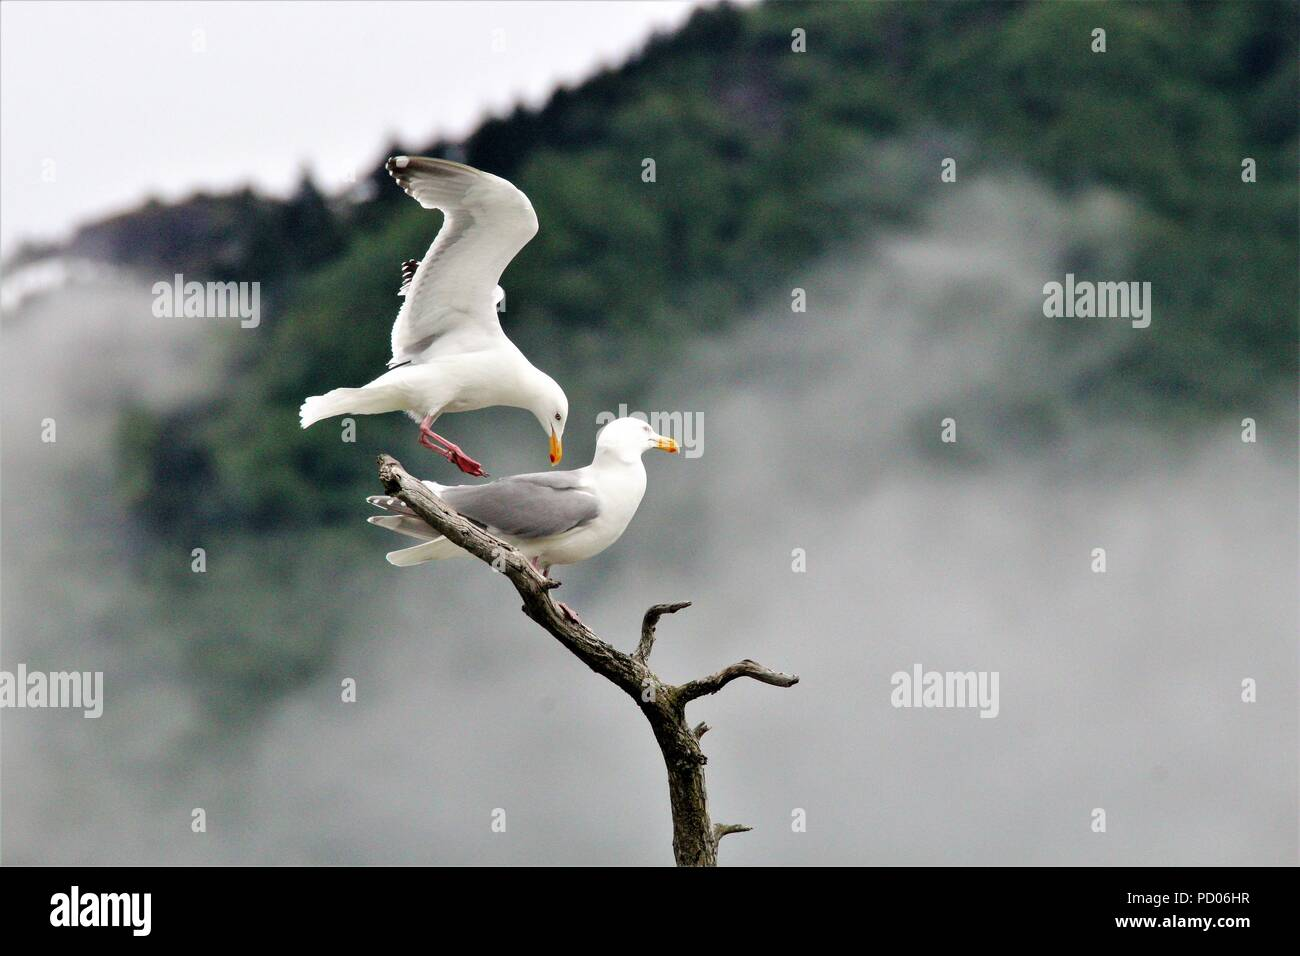 Seagulls coming in to land on tree Stock Photo